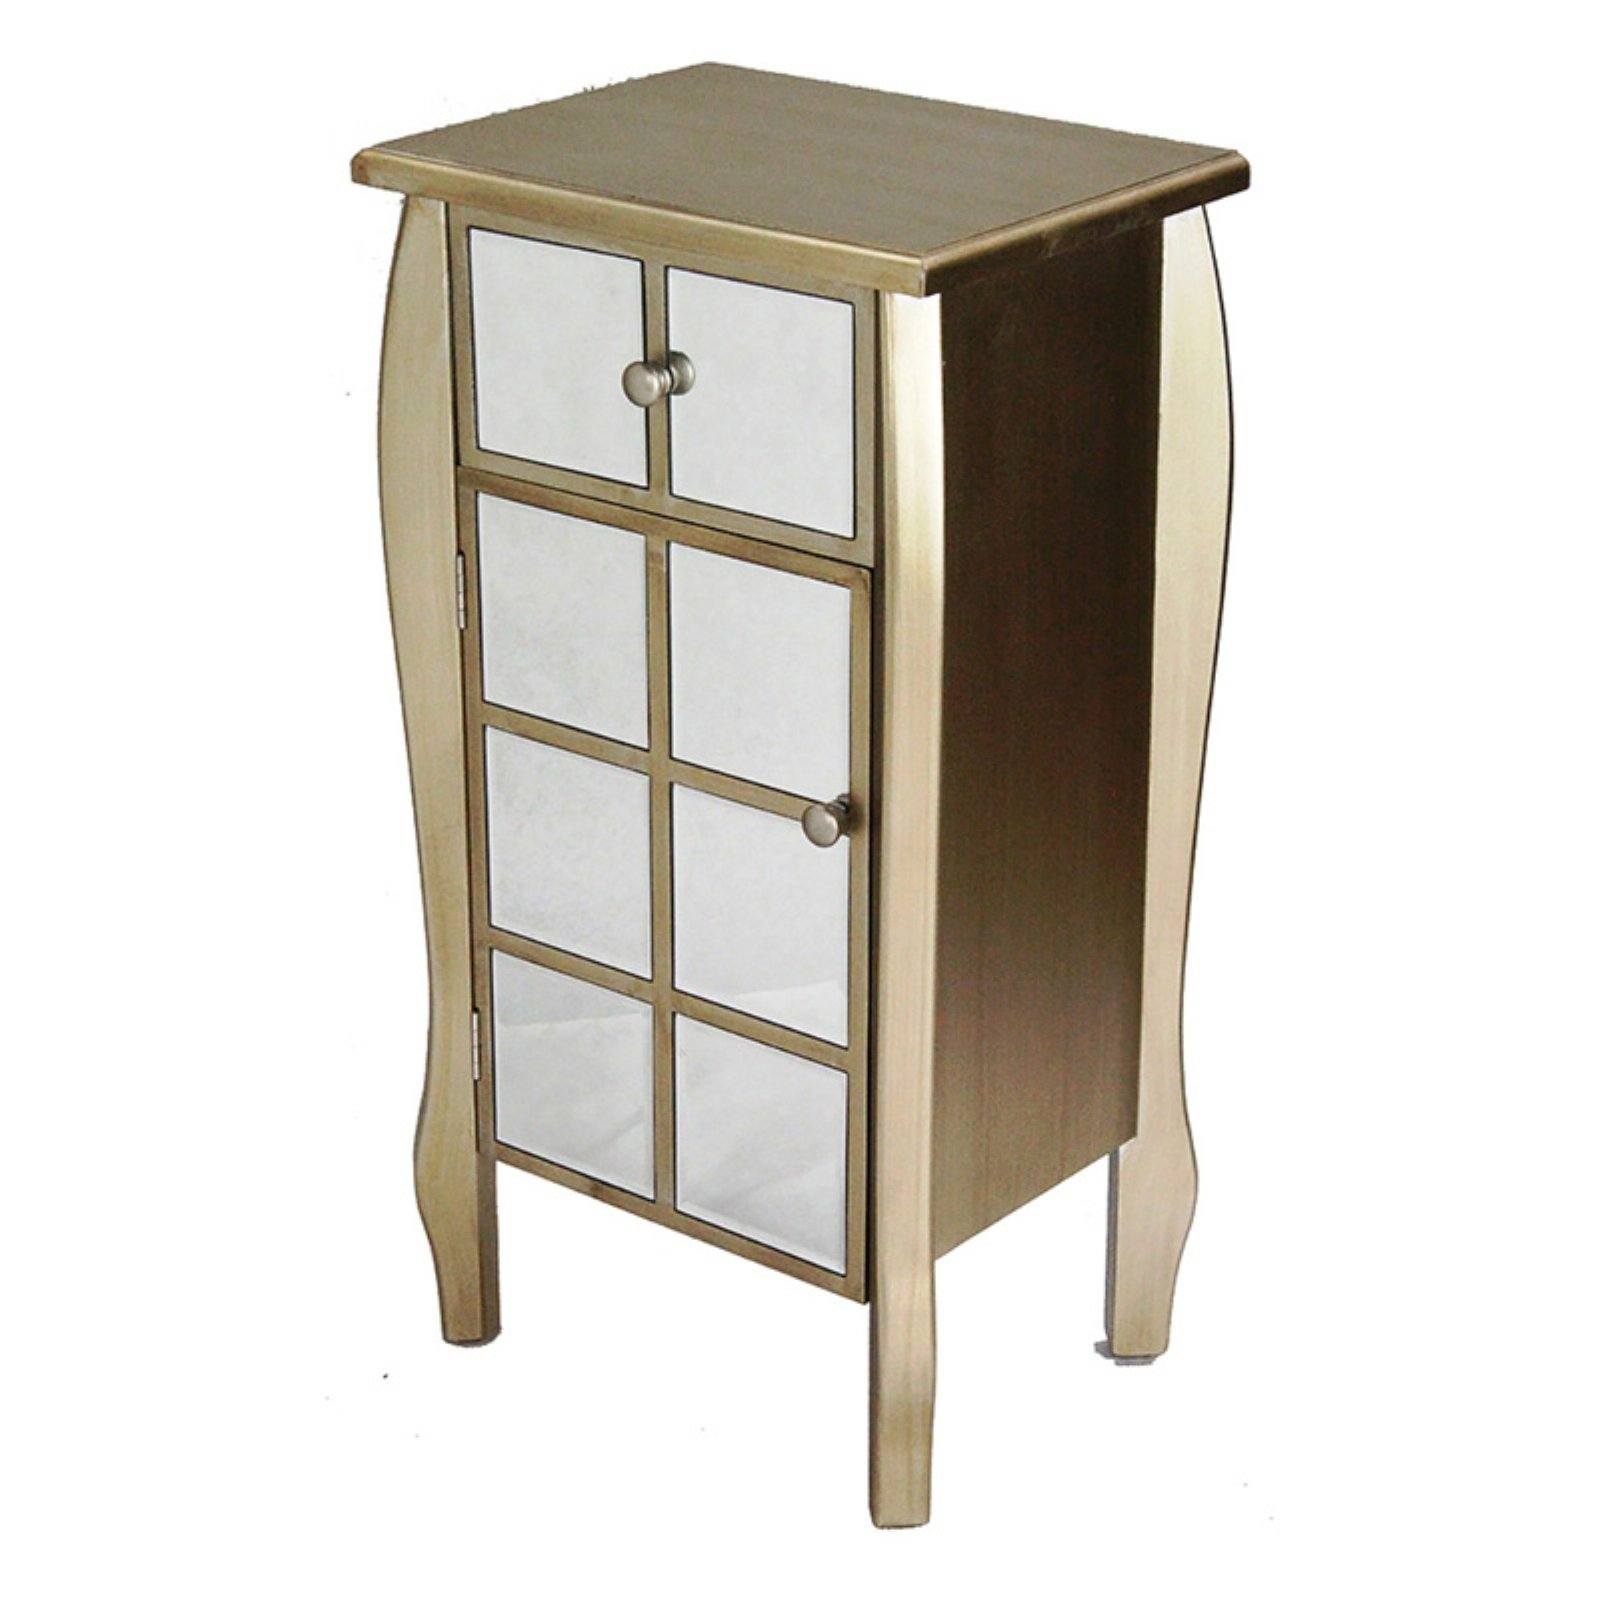 Heather Ann Creations Lana 1 Drawer 1 Door Mirrored Accent Cabinet